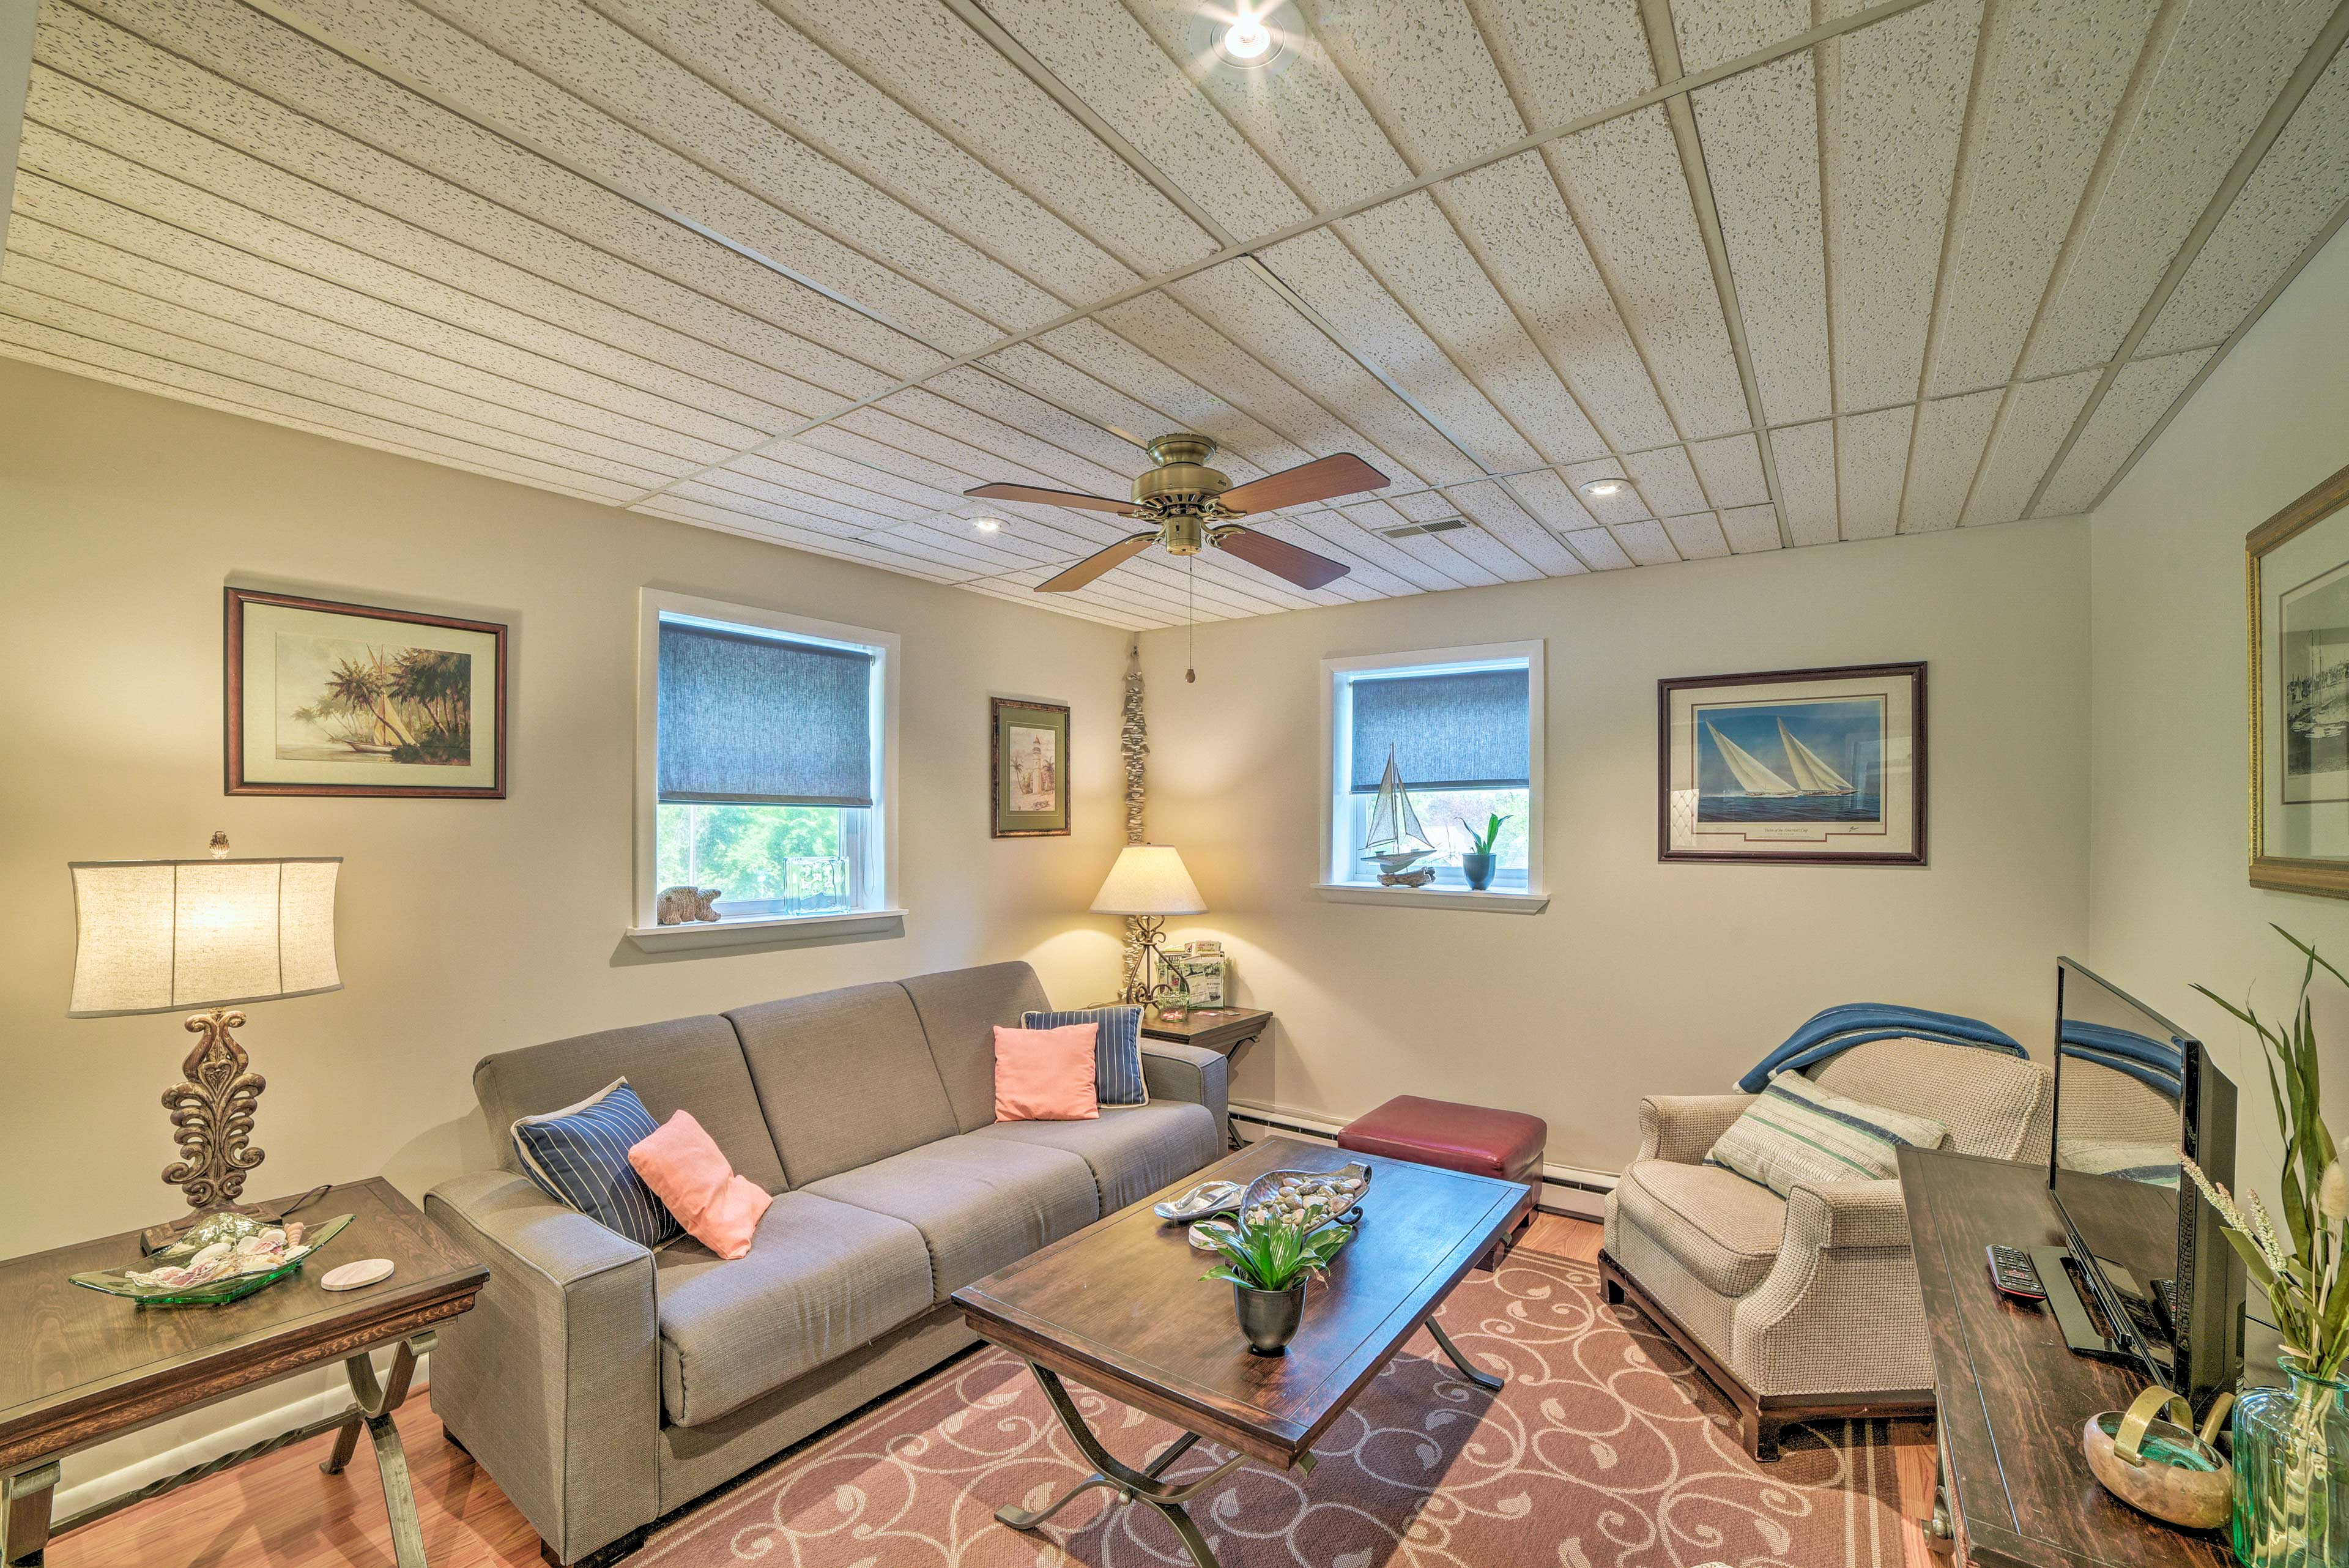 The whole property is tastefully furnished with updated decor.